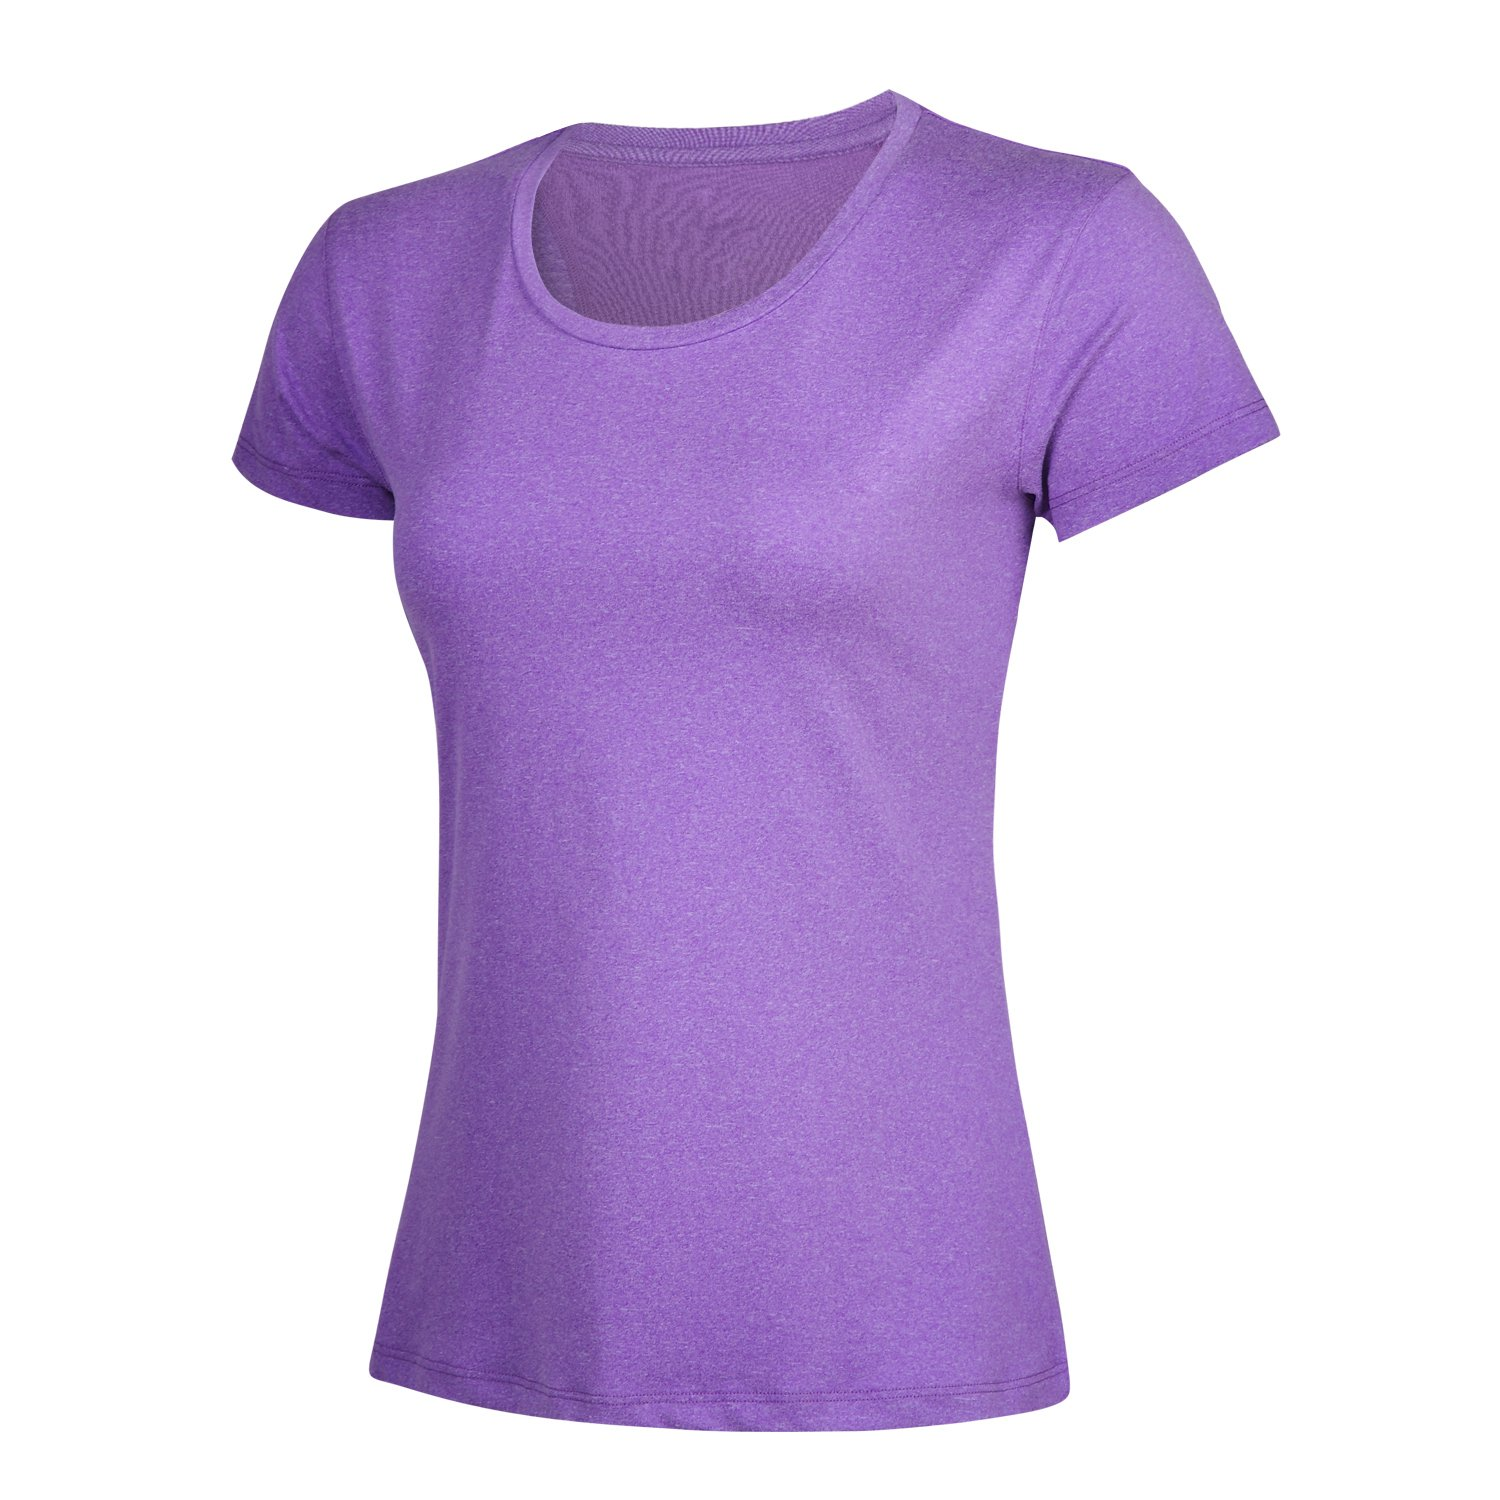 b034d4d97ef5b Amazon.com  SPOEAR Women s t Shirt Workout Back Mesh Sportwear Quik Dry  Fitness Yoga Running Short-Sleeve Top  Clothing